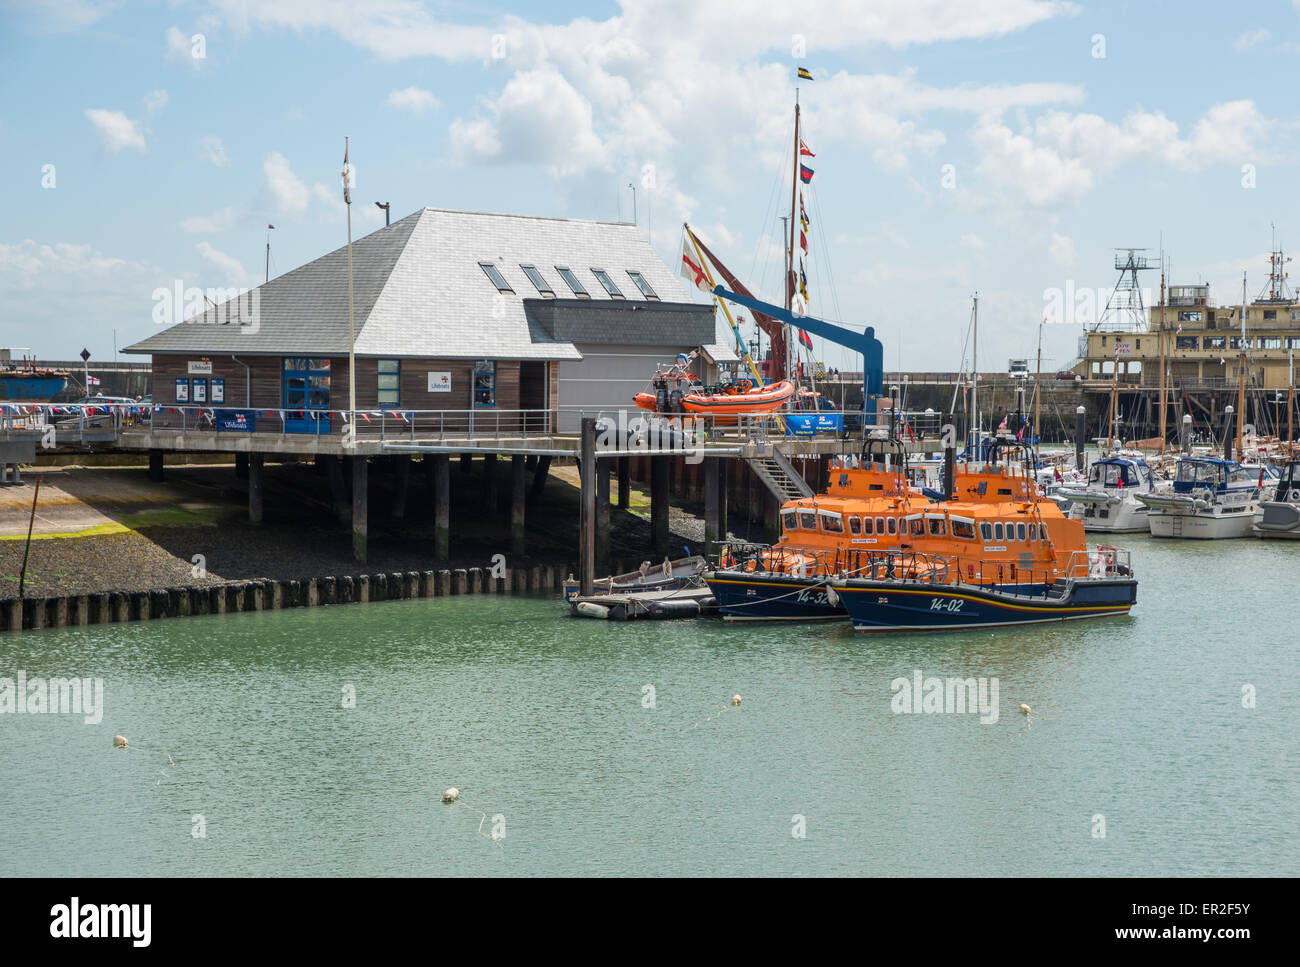 Ramsgate Lifeboat Esme Anderson and relief lifeboat Corinne Whiteley, both Trent Class, at Ramsgate Royal Harbour. - Stock Image